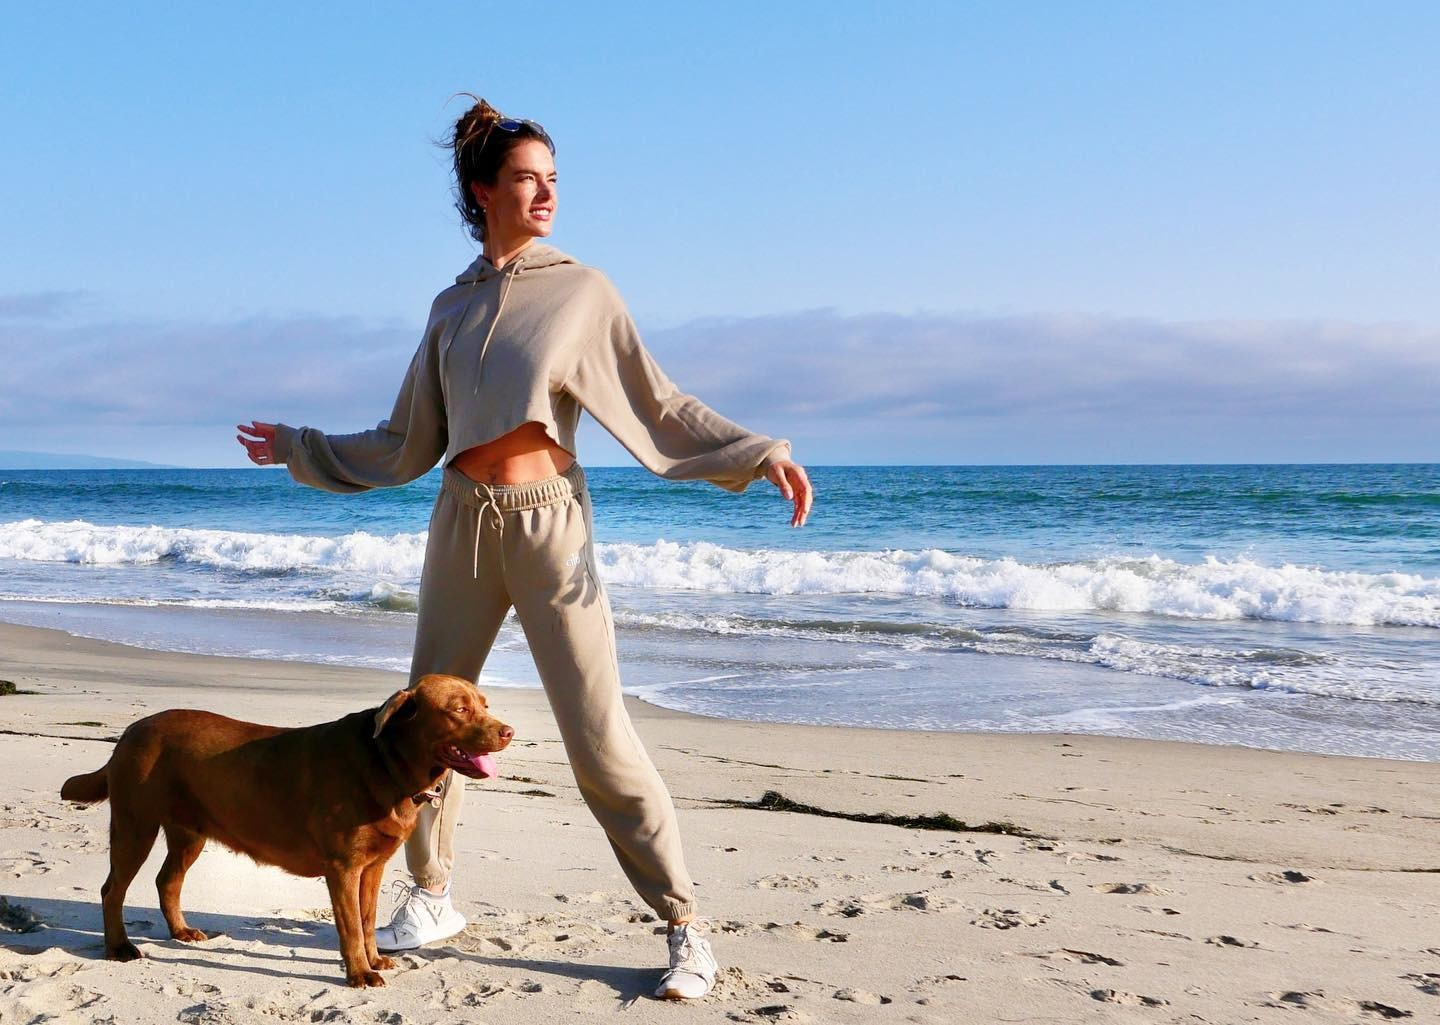 @alessandraambrosio wearing the Bae Hoodie and Accolade Sweatpants while throwing a ball for her dog at the beach.